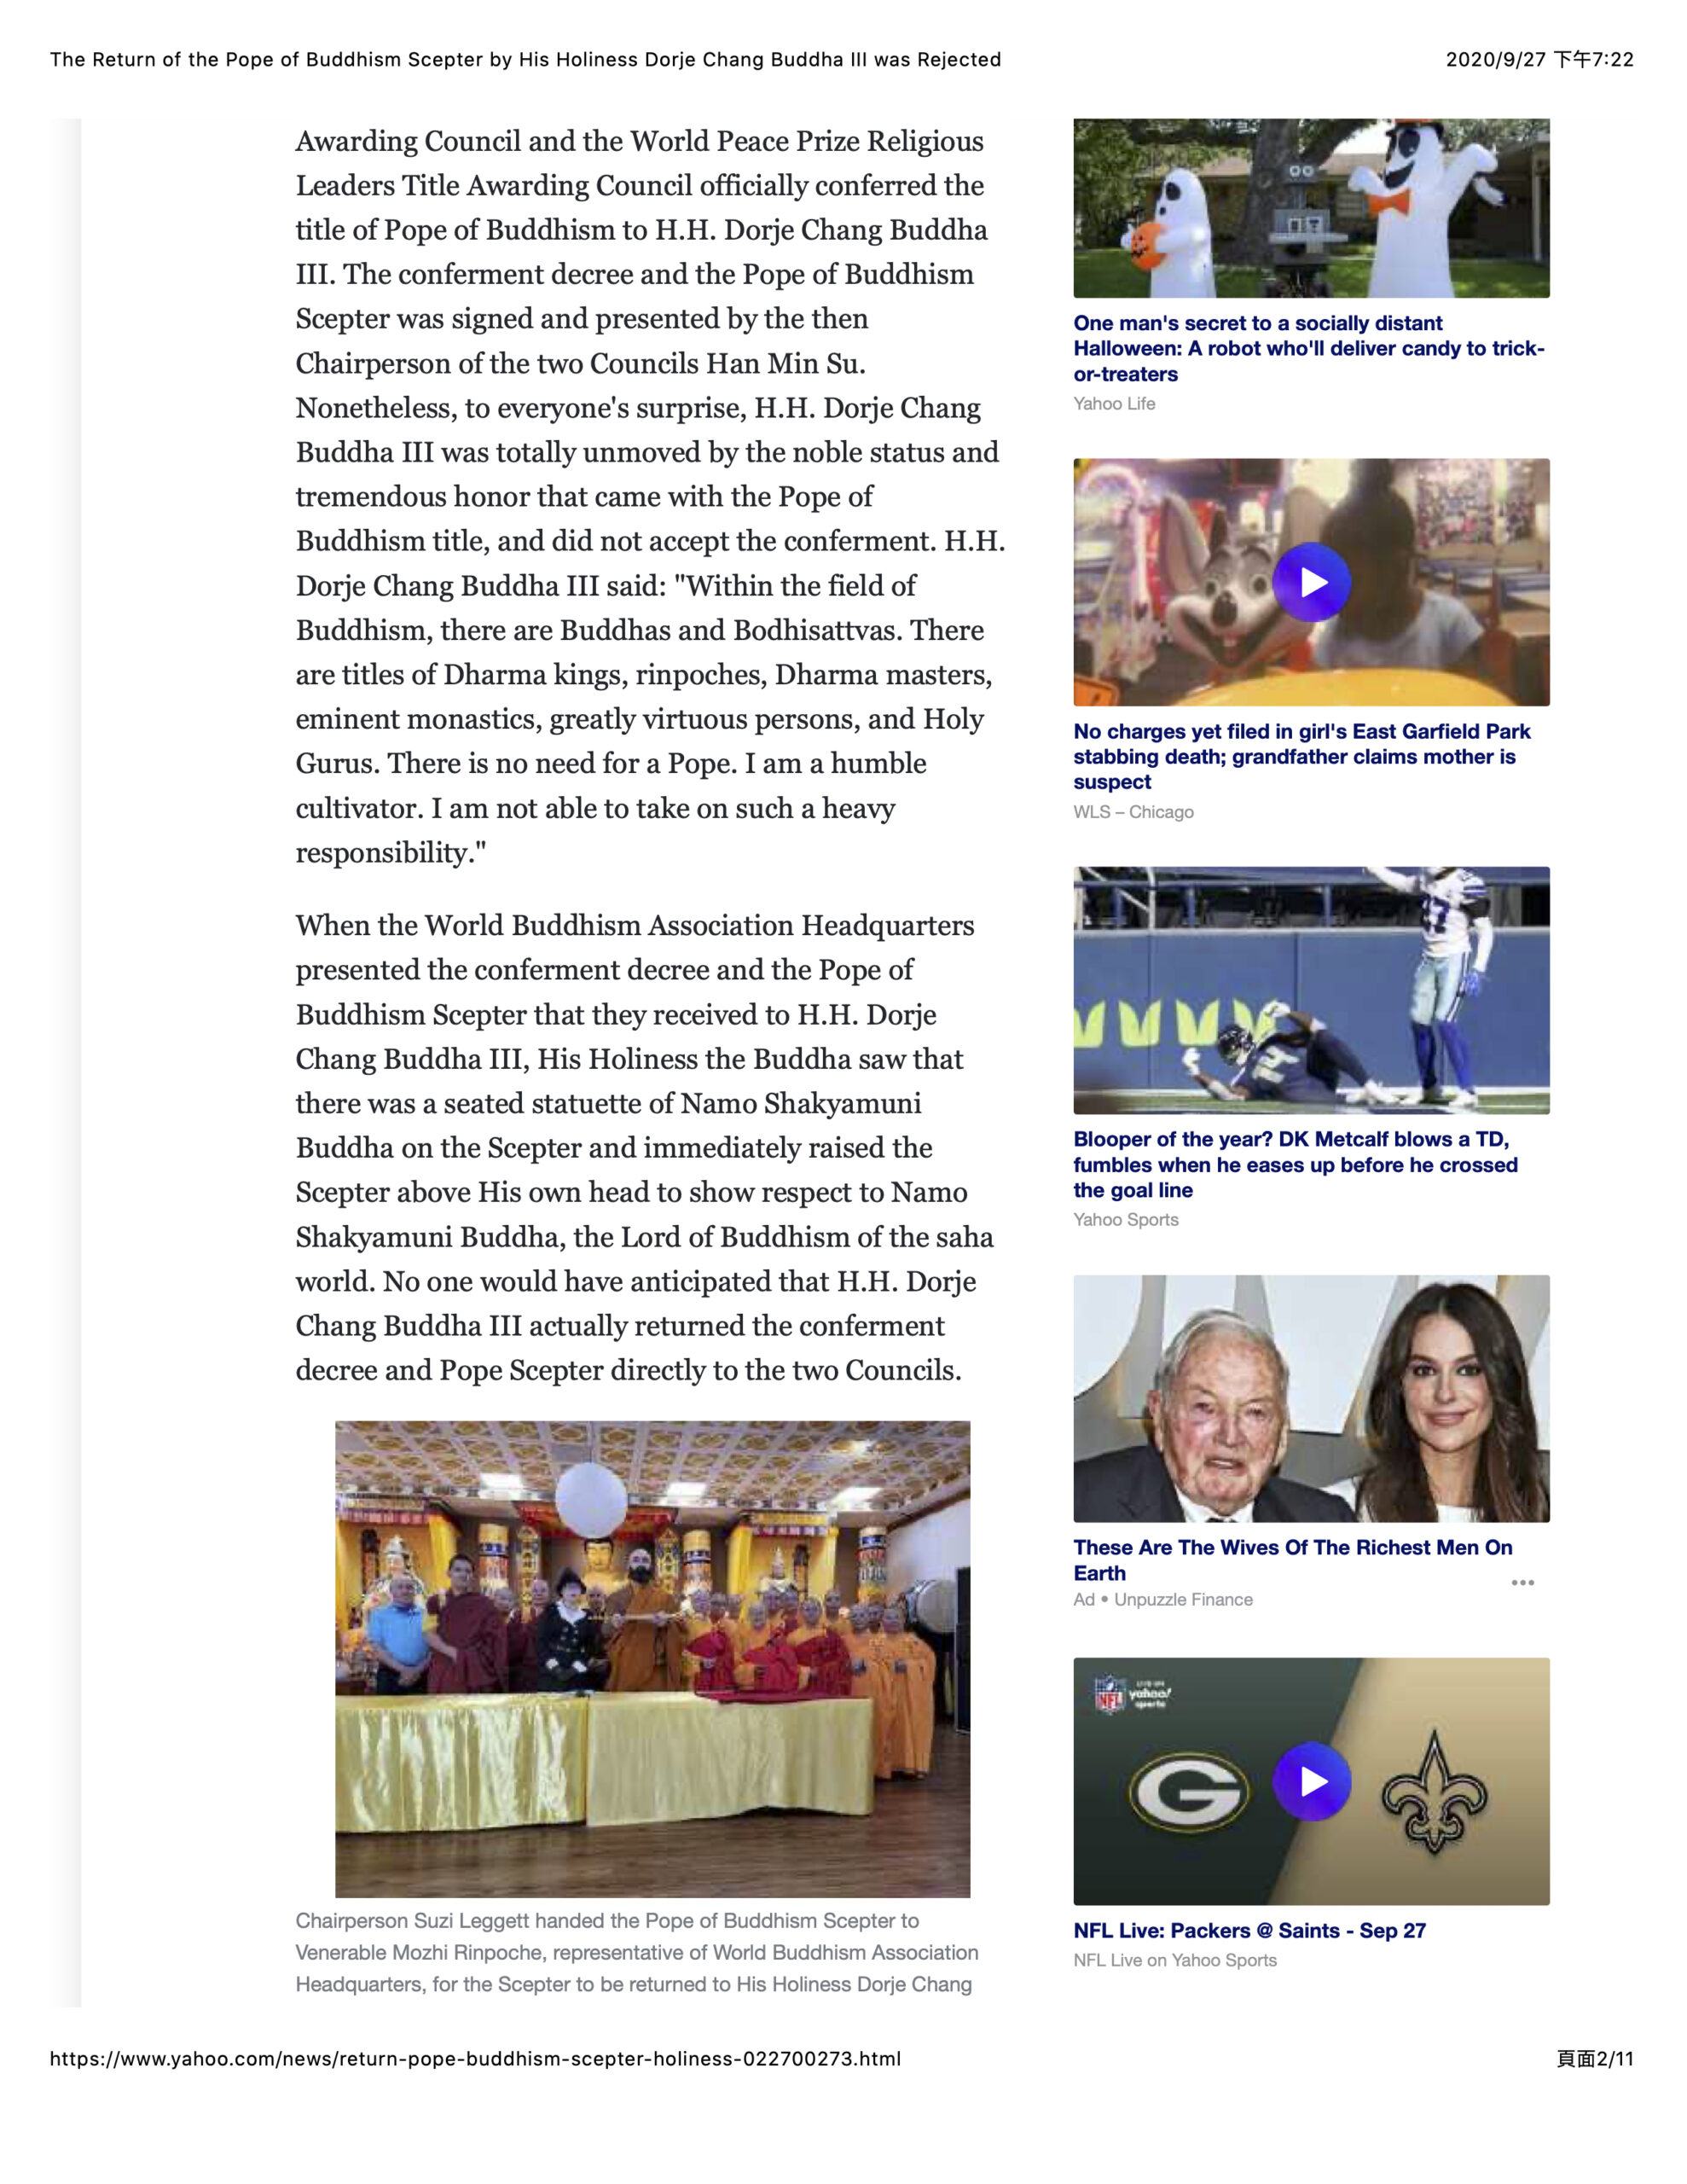 4-2. Yahoo News 雅虎新聞_The Return of the Pope of Buddhism Scepter_9-27-2020_s